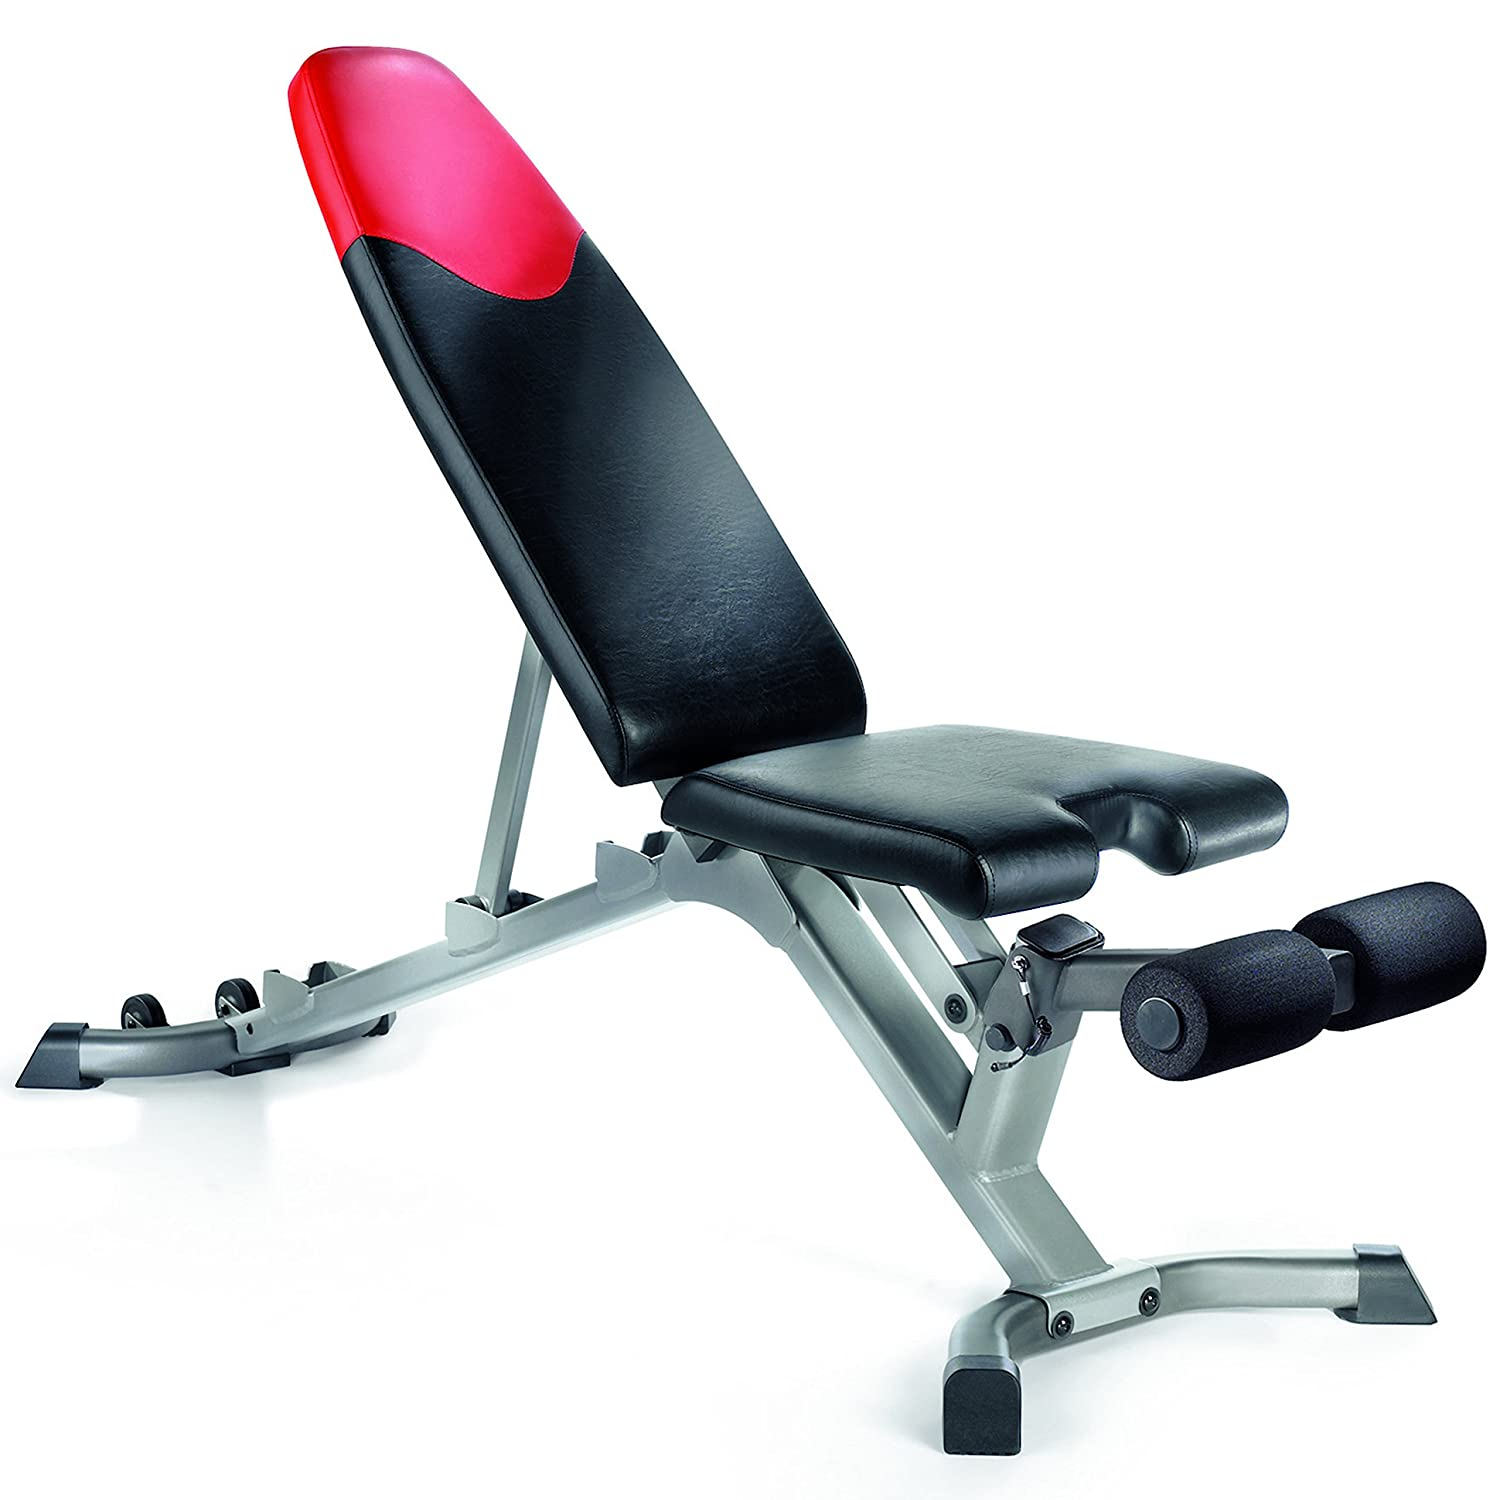 Bowflex SelectTech Adjustable Bench Series